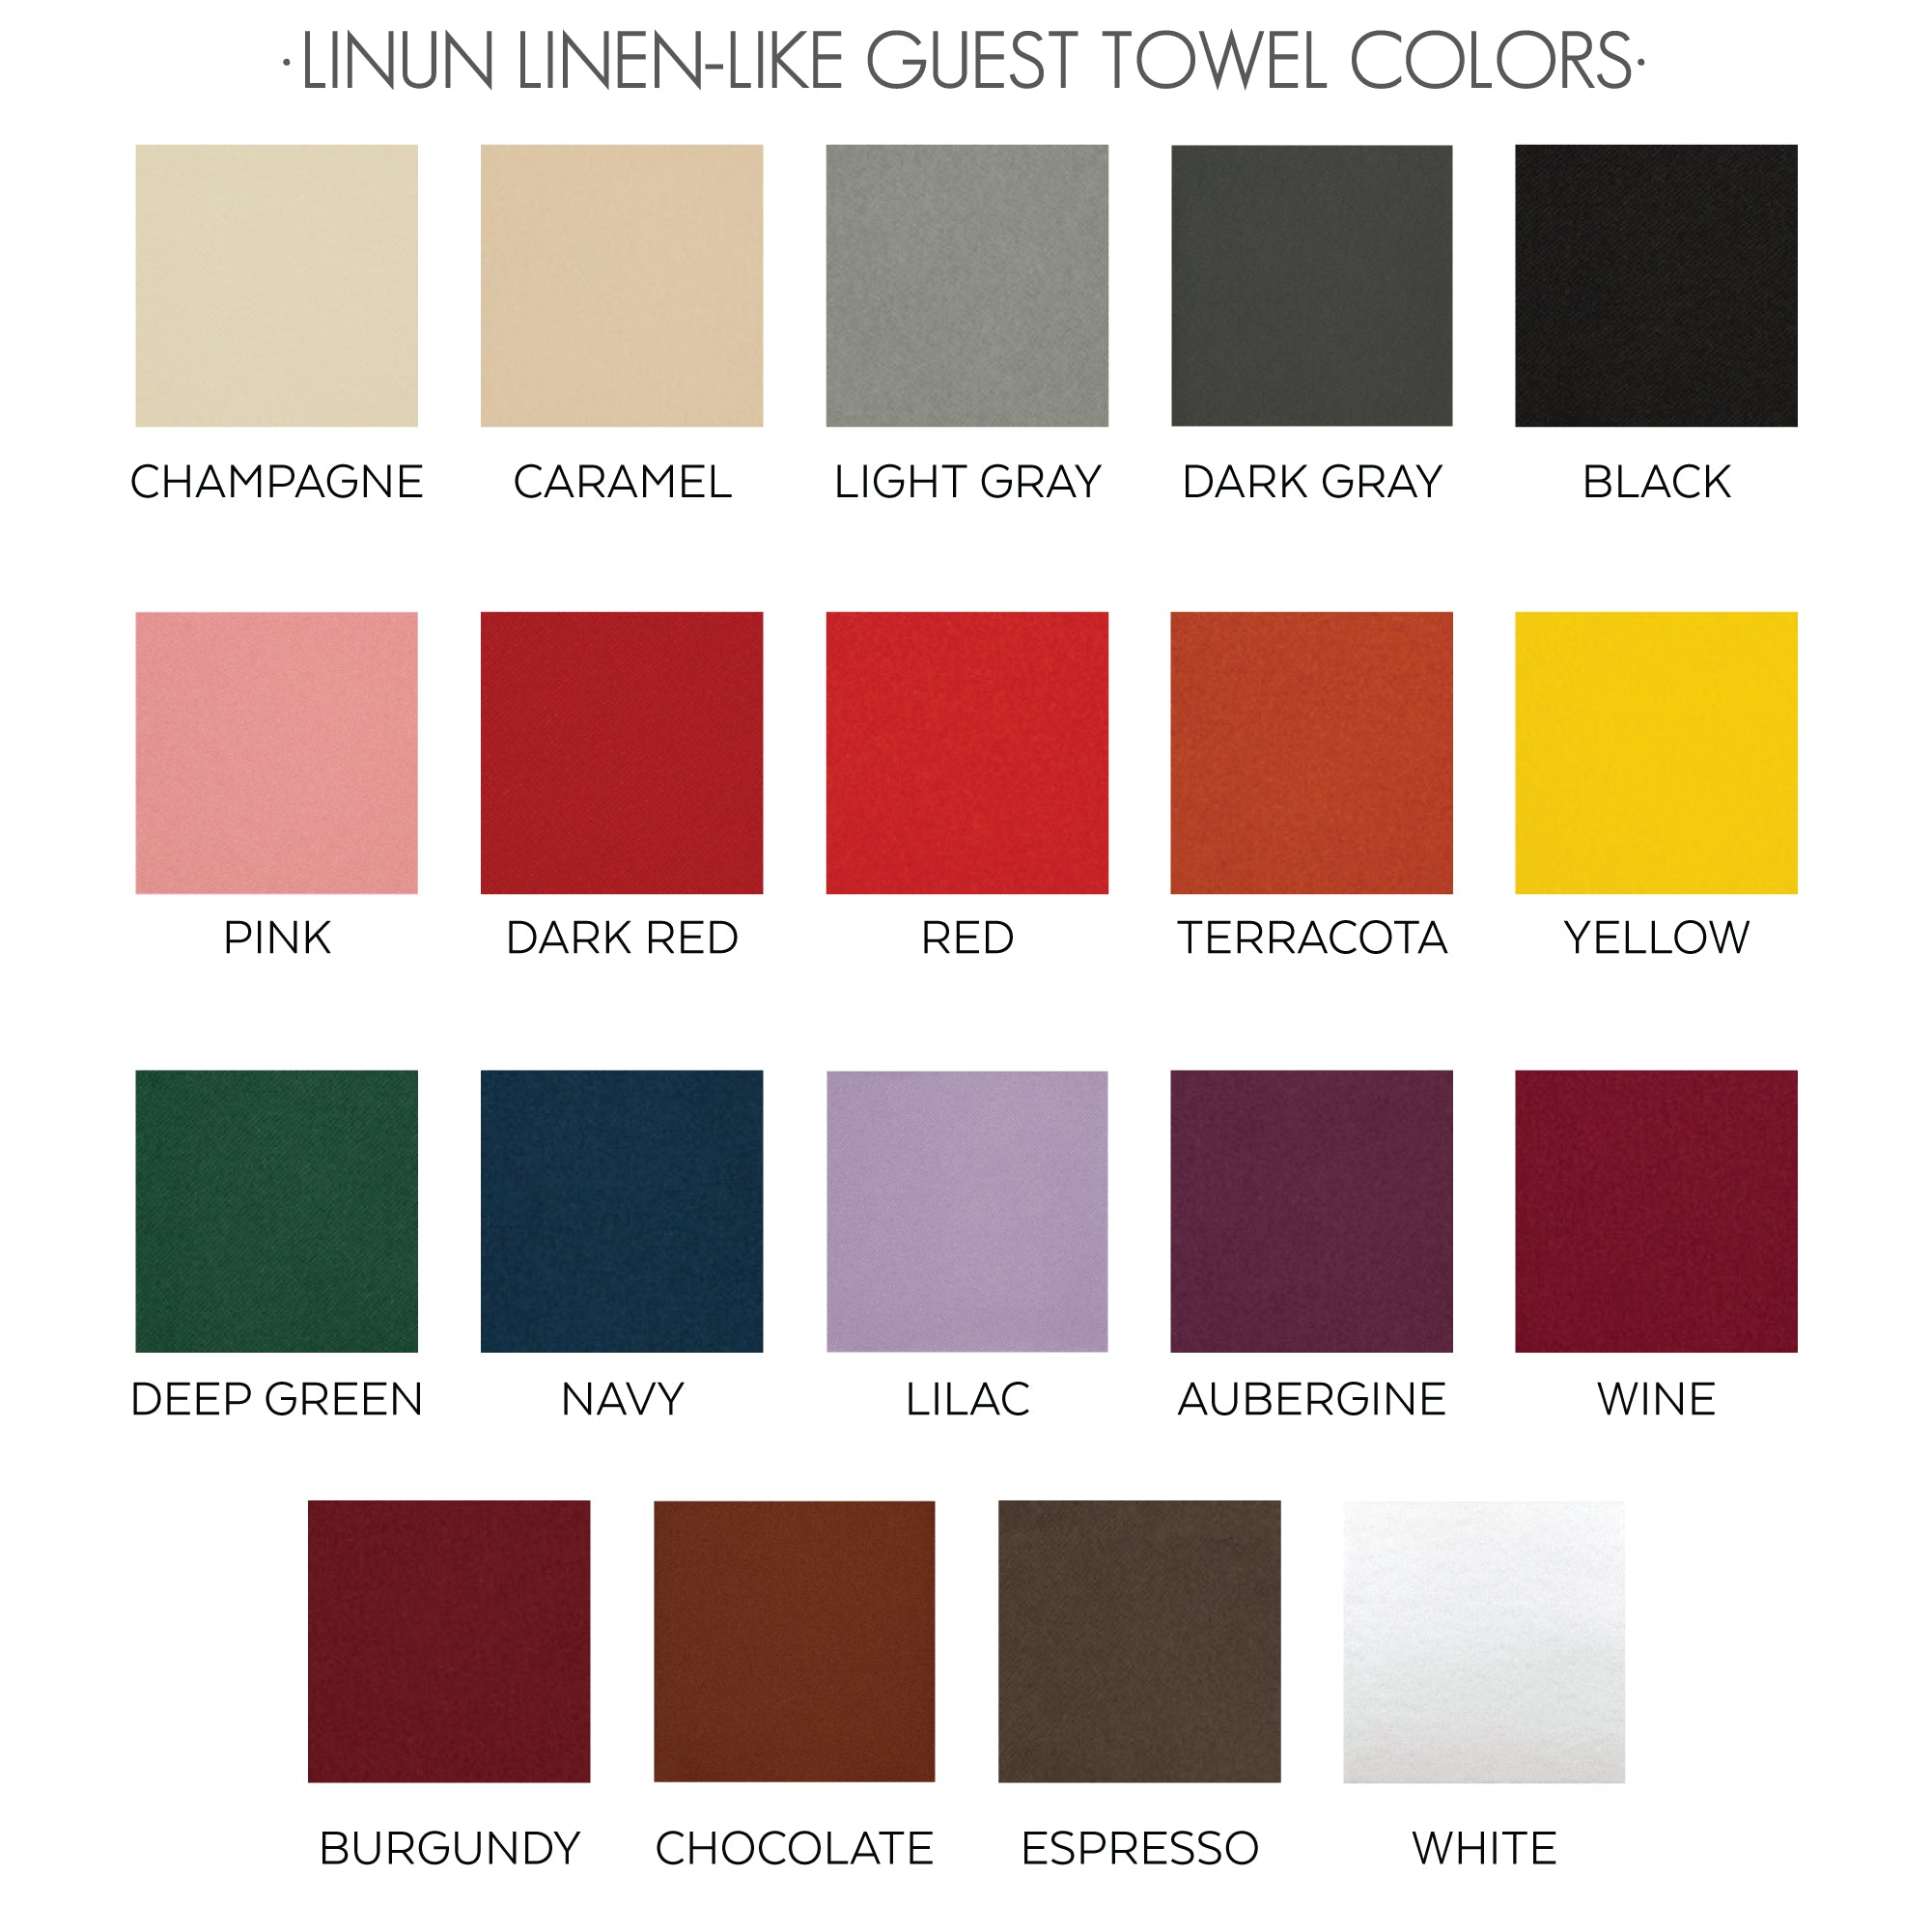 linen-like napkin colors